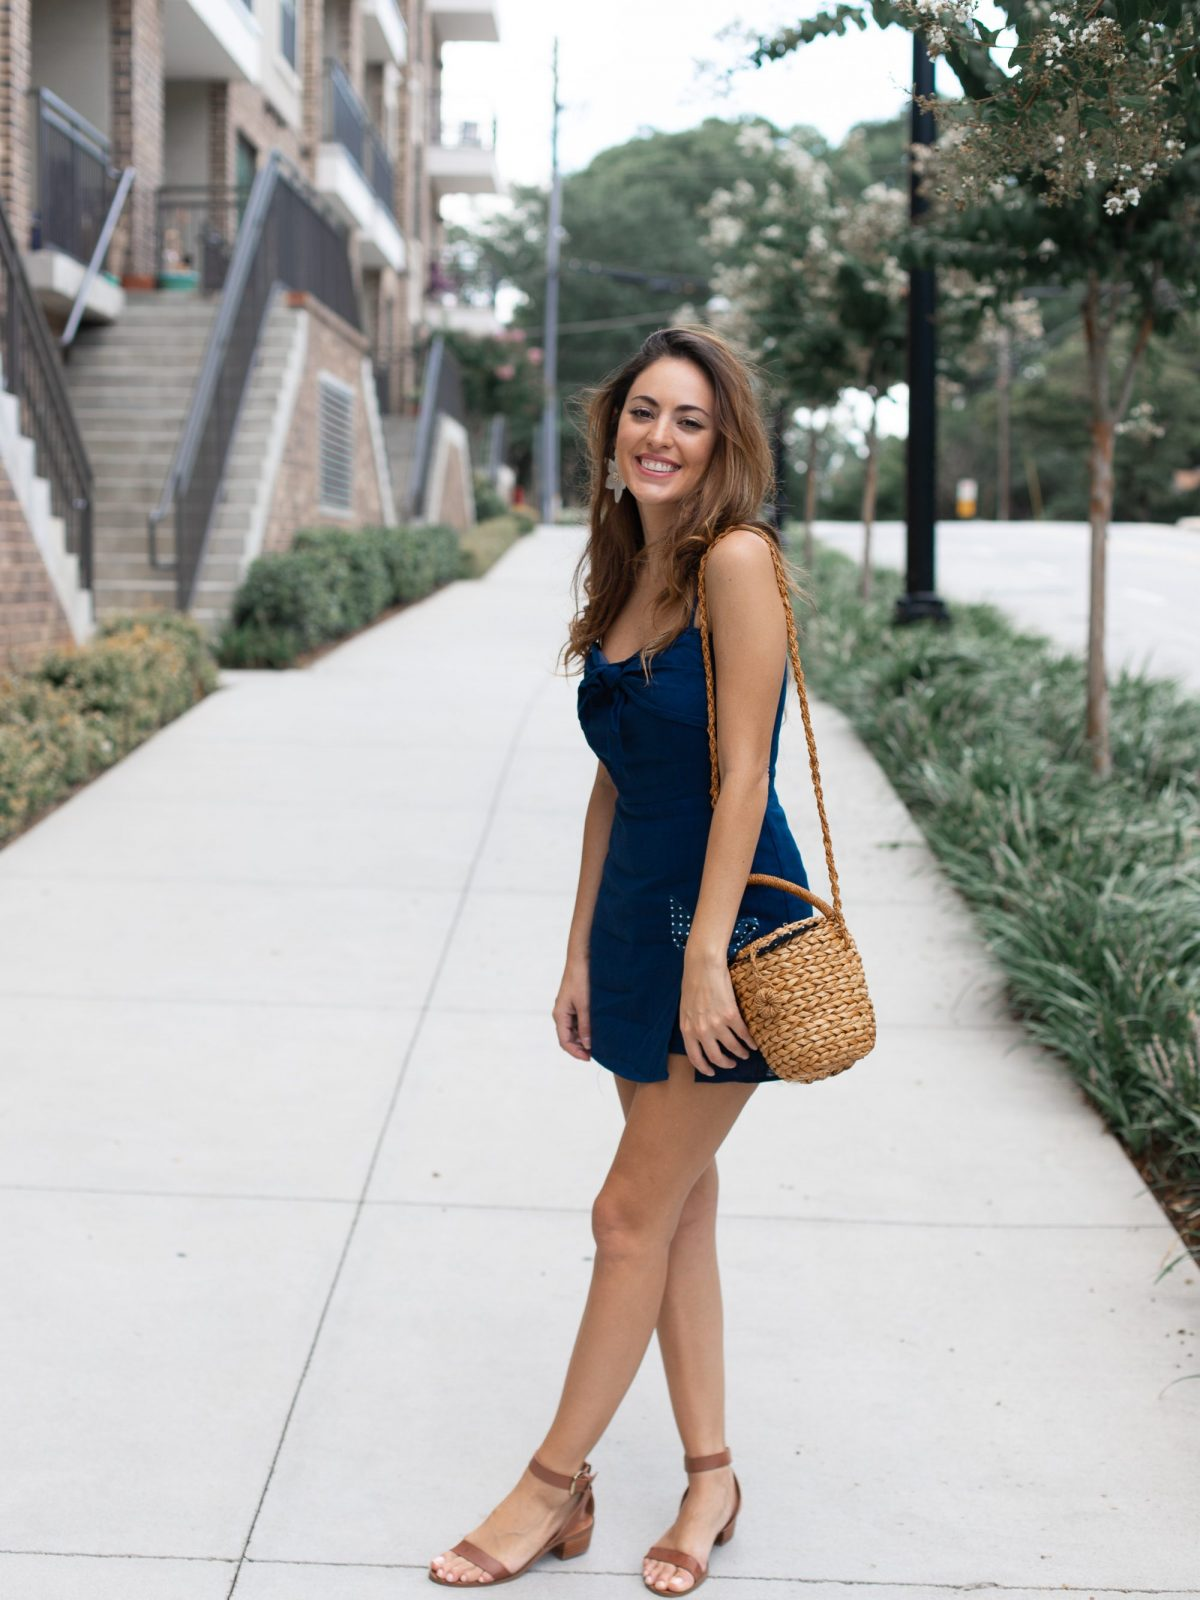 cotton candy LA blue linen dress, summer sundress styling tips, simple summer outfit ideas, what to wear on a day date